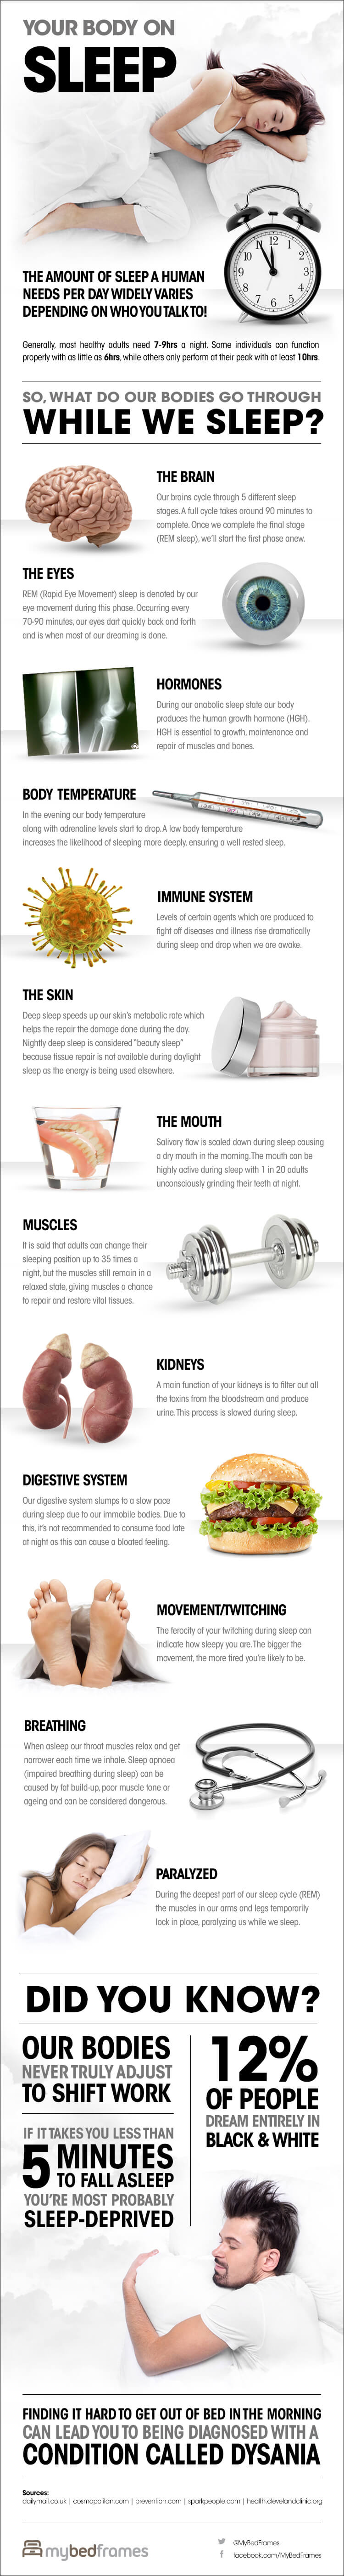 Your Body On Sleep [Infographic]